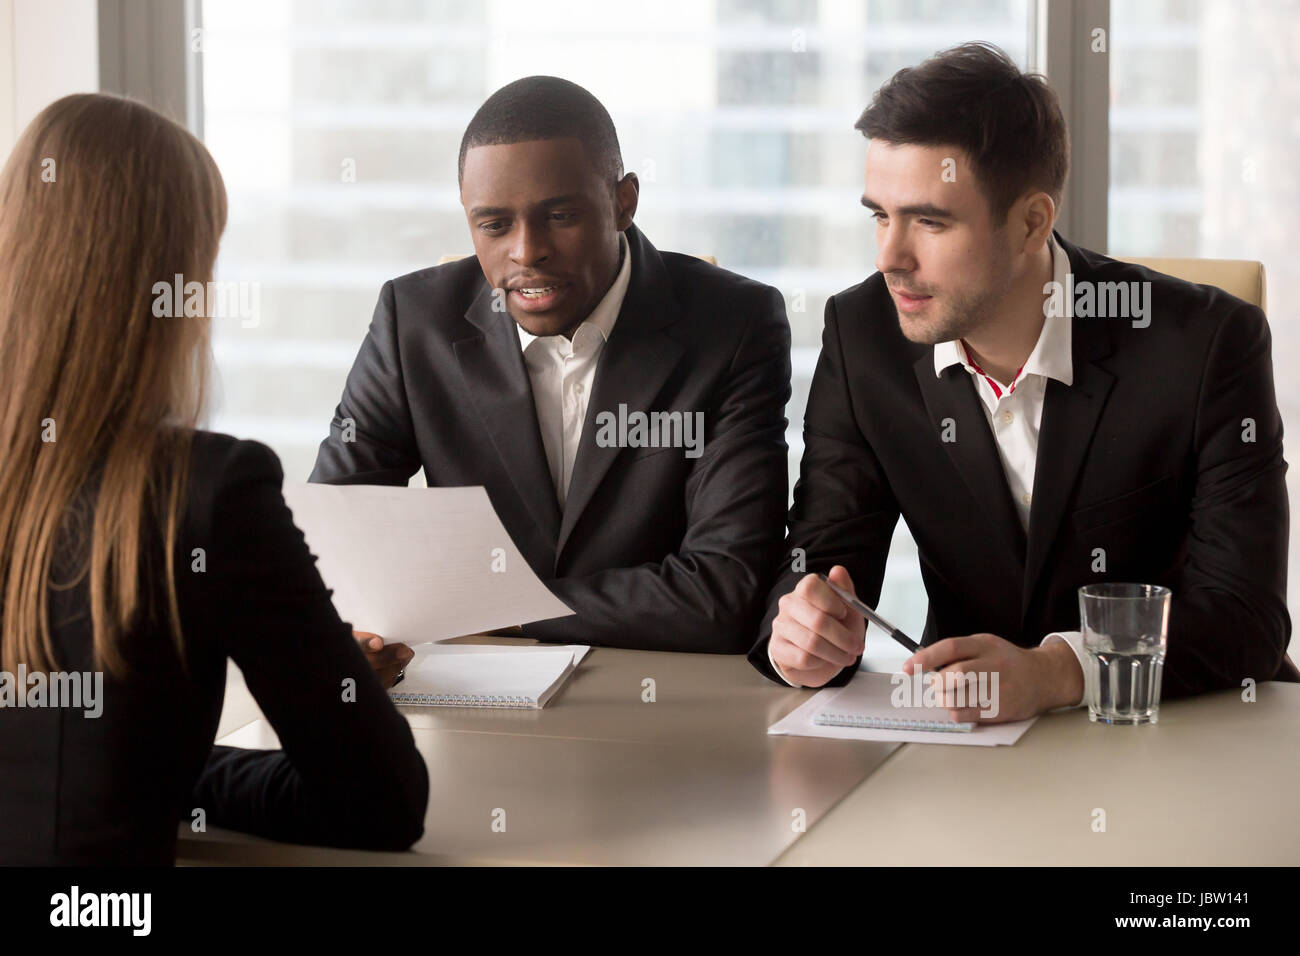 Multiracial black and white recruiters, executive hr management group interviewing female job applicant, headhunters - Stock Image